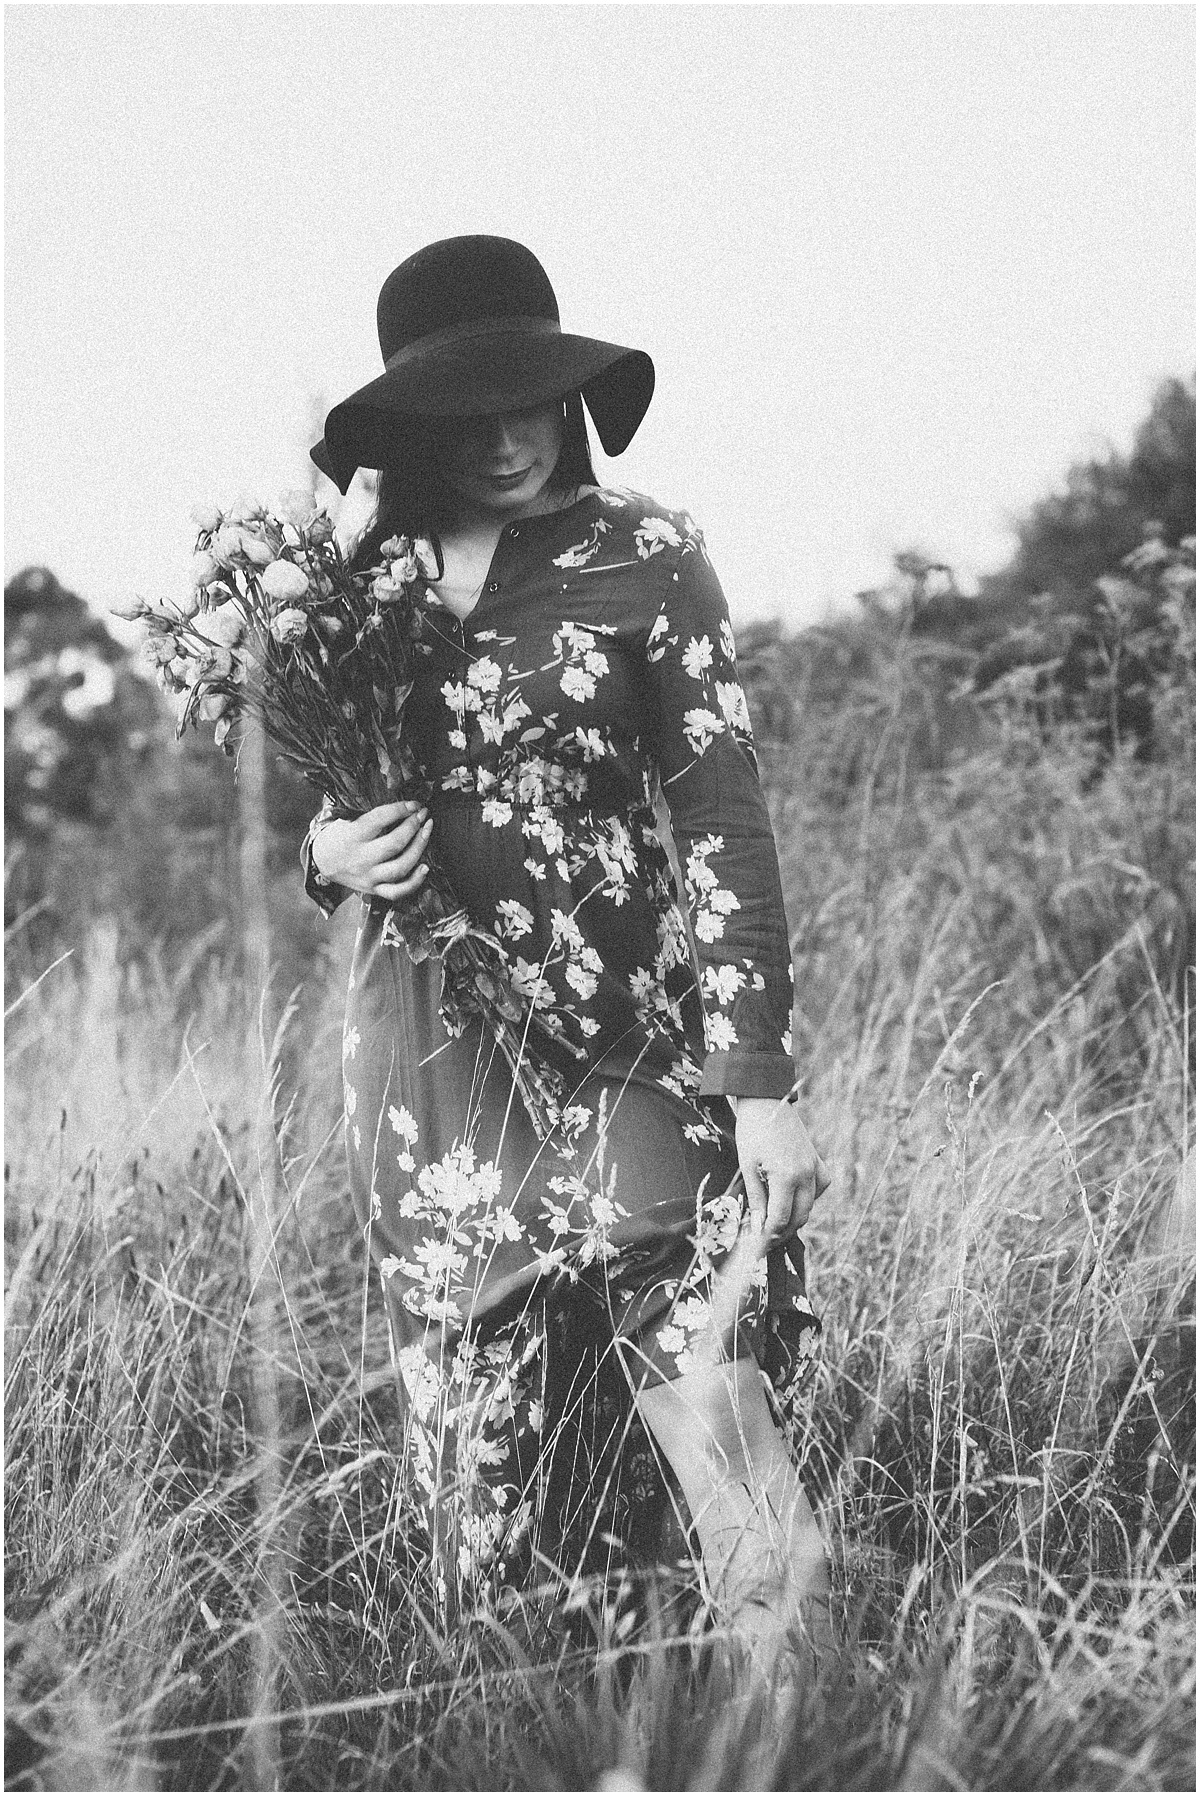 Black & White photo of girl in field with bouquet of flowers